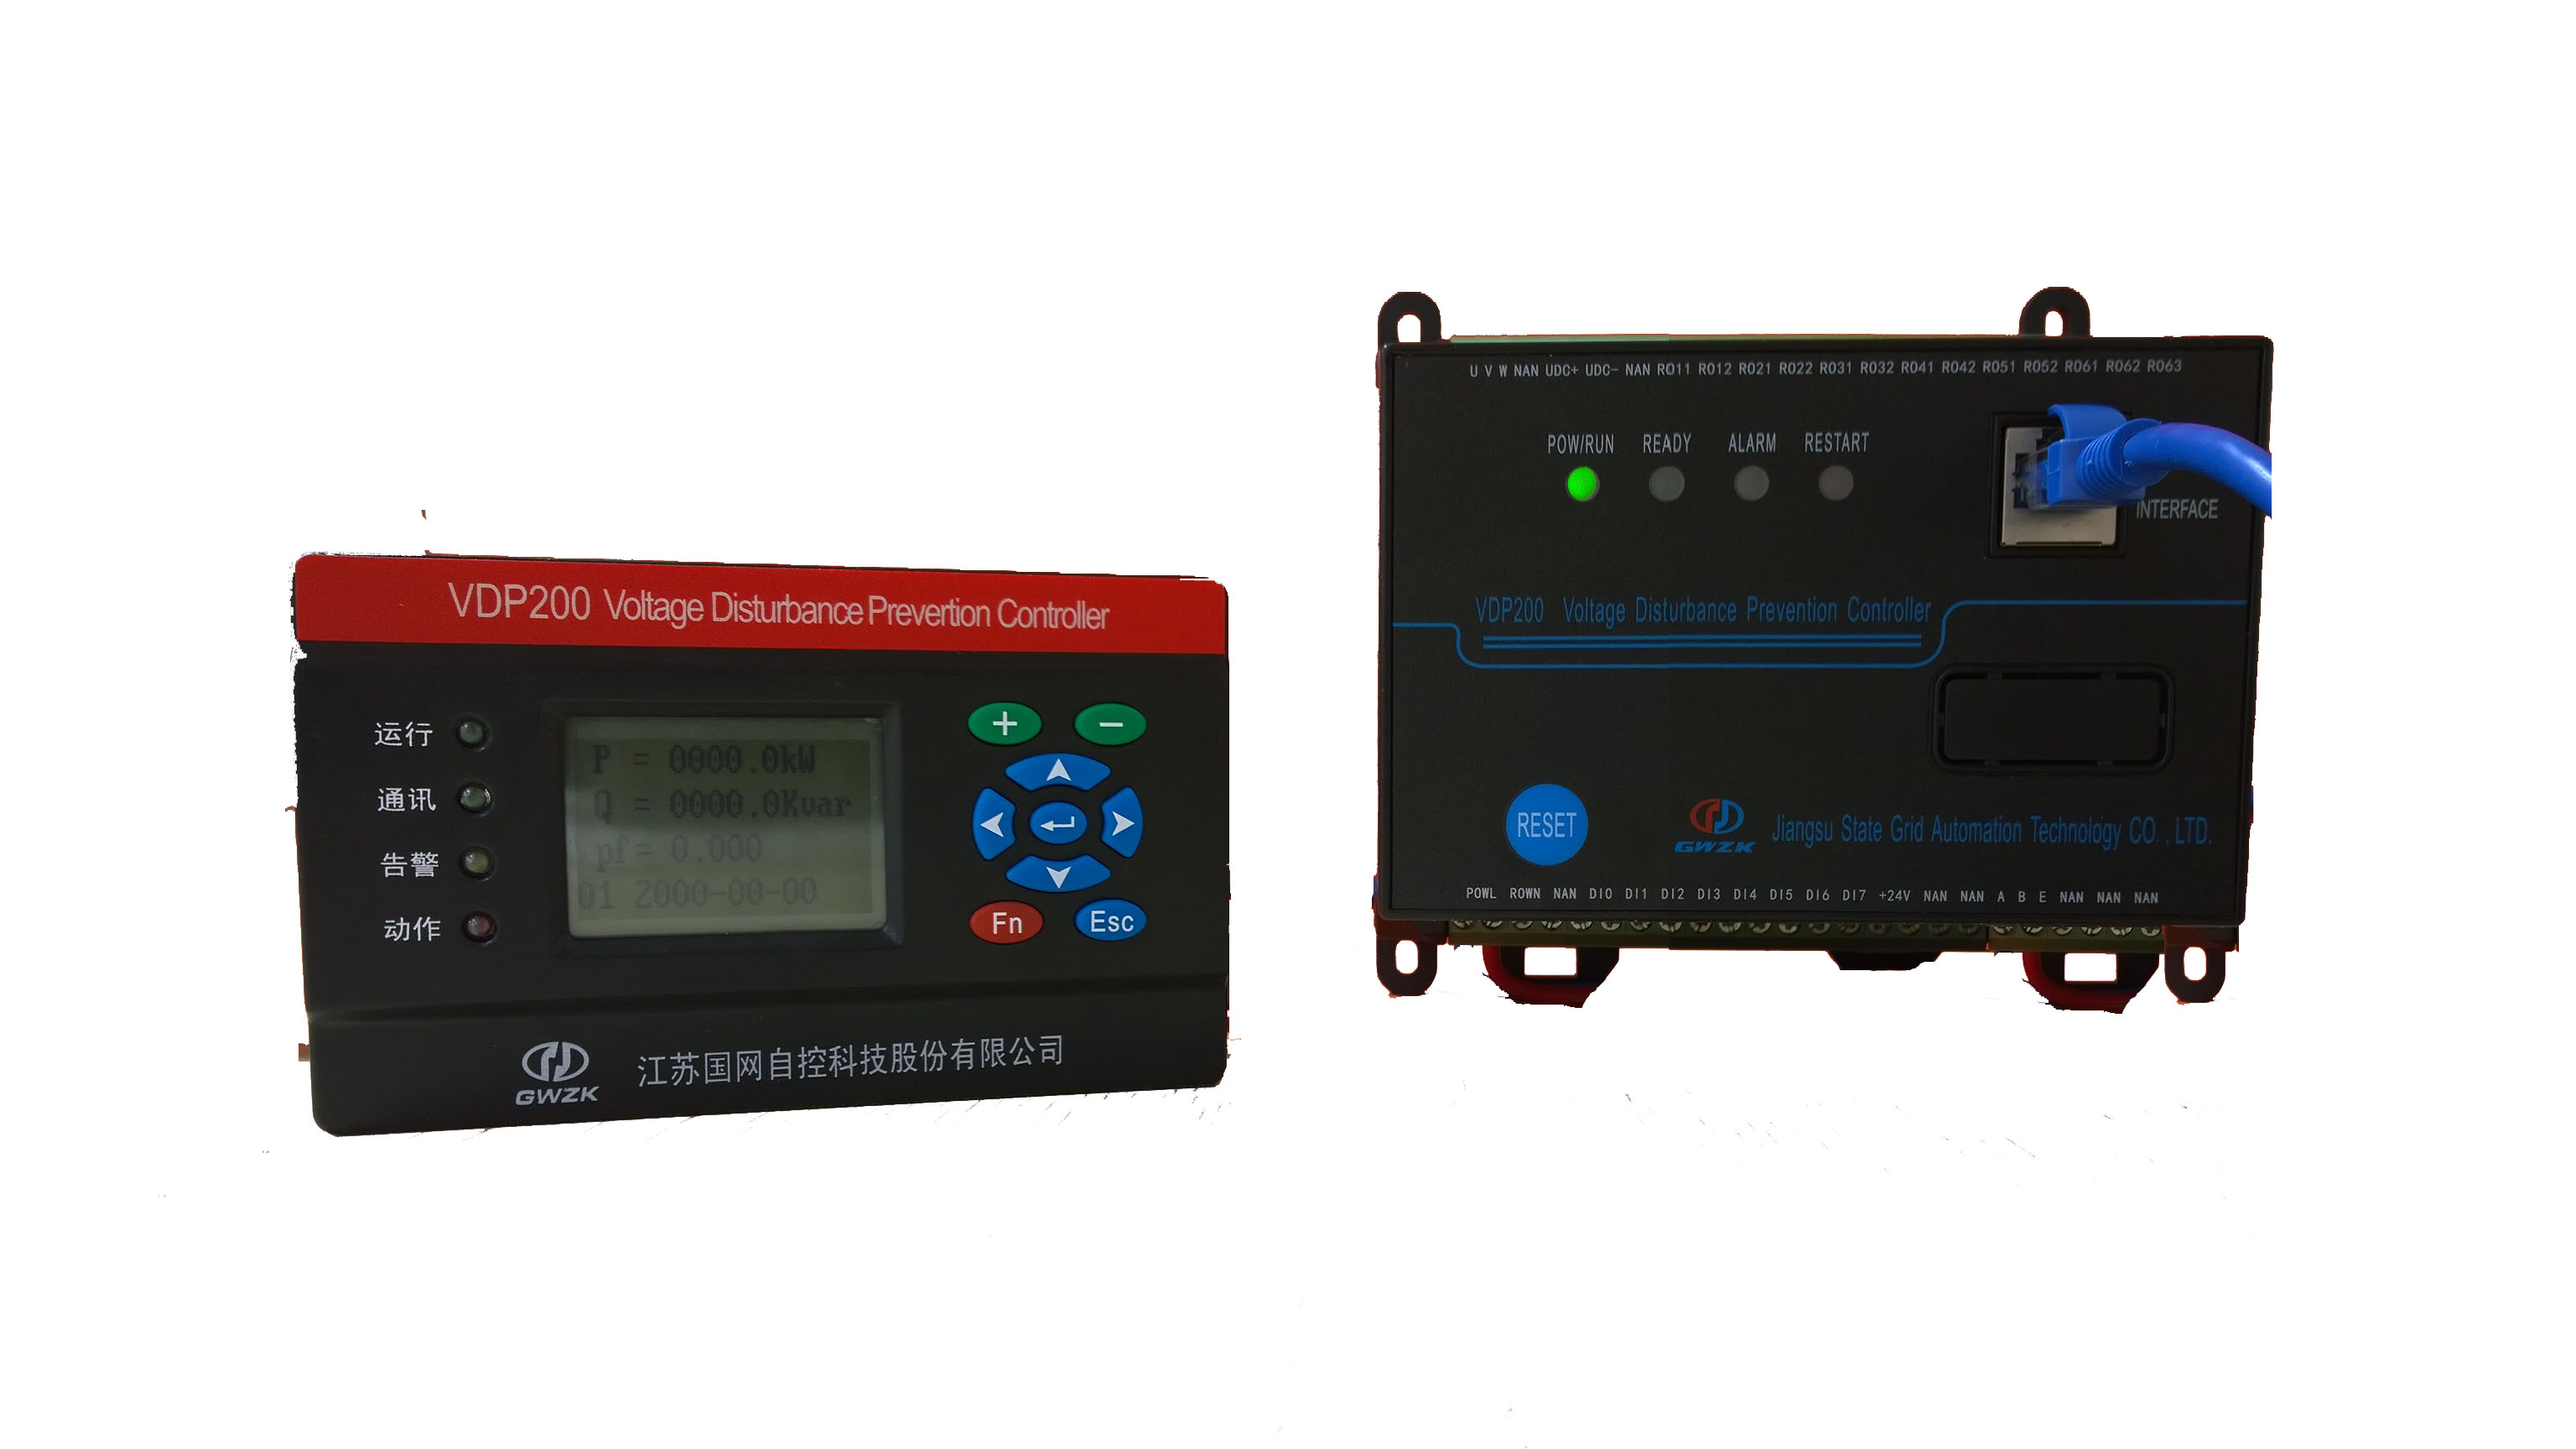 VDP-200 Voltage Disturbance Prevention Controller